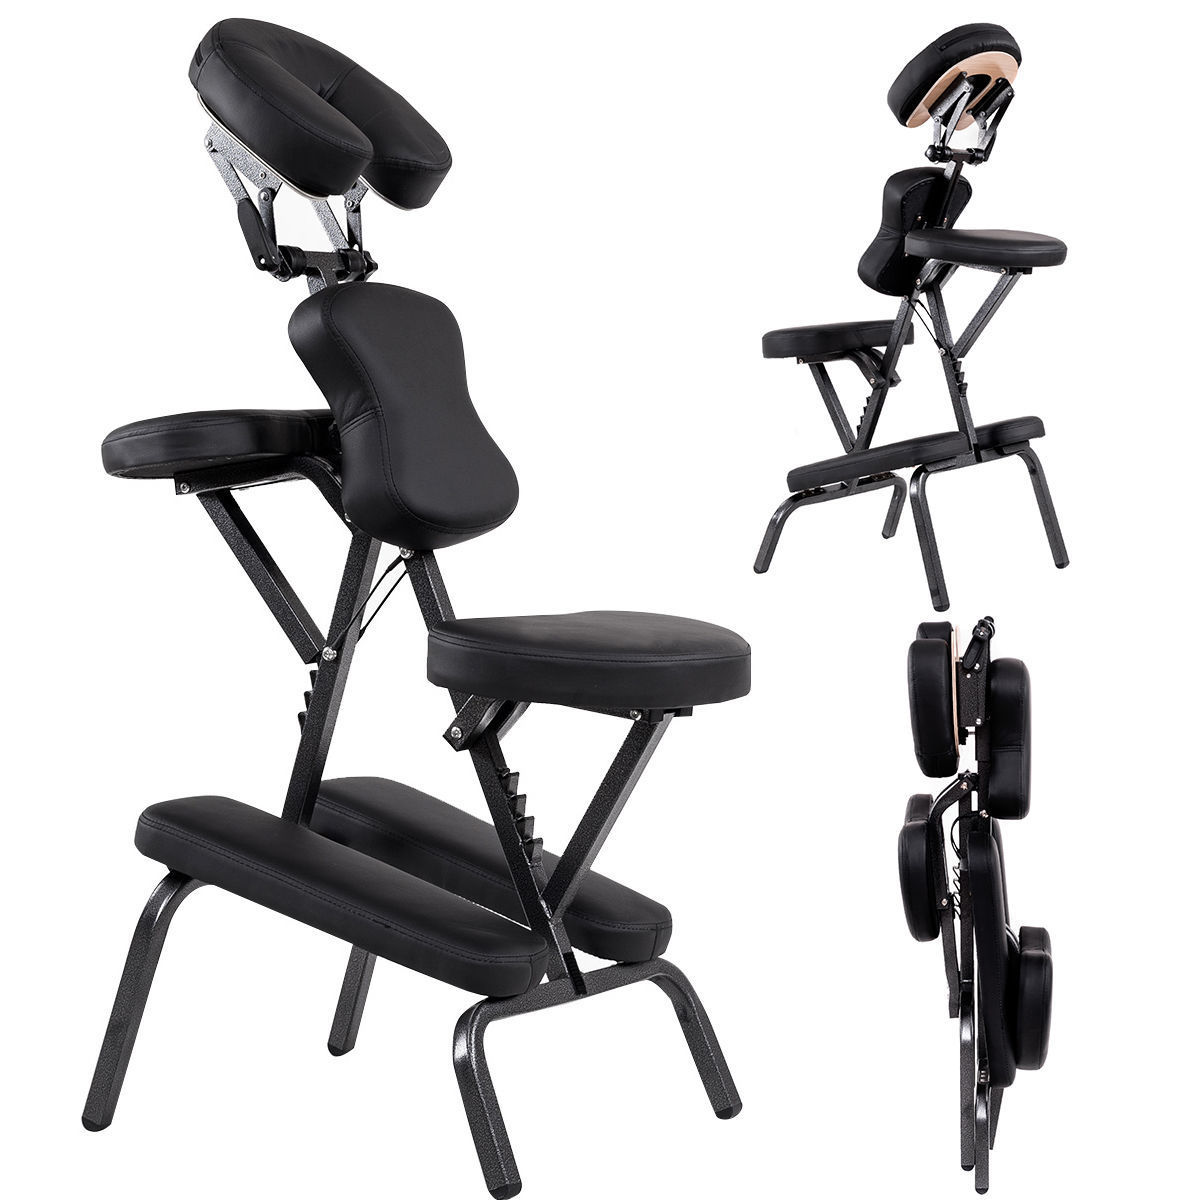 hydro massage chair modern side new portable leather travel tyc88